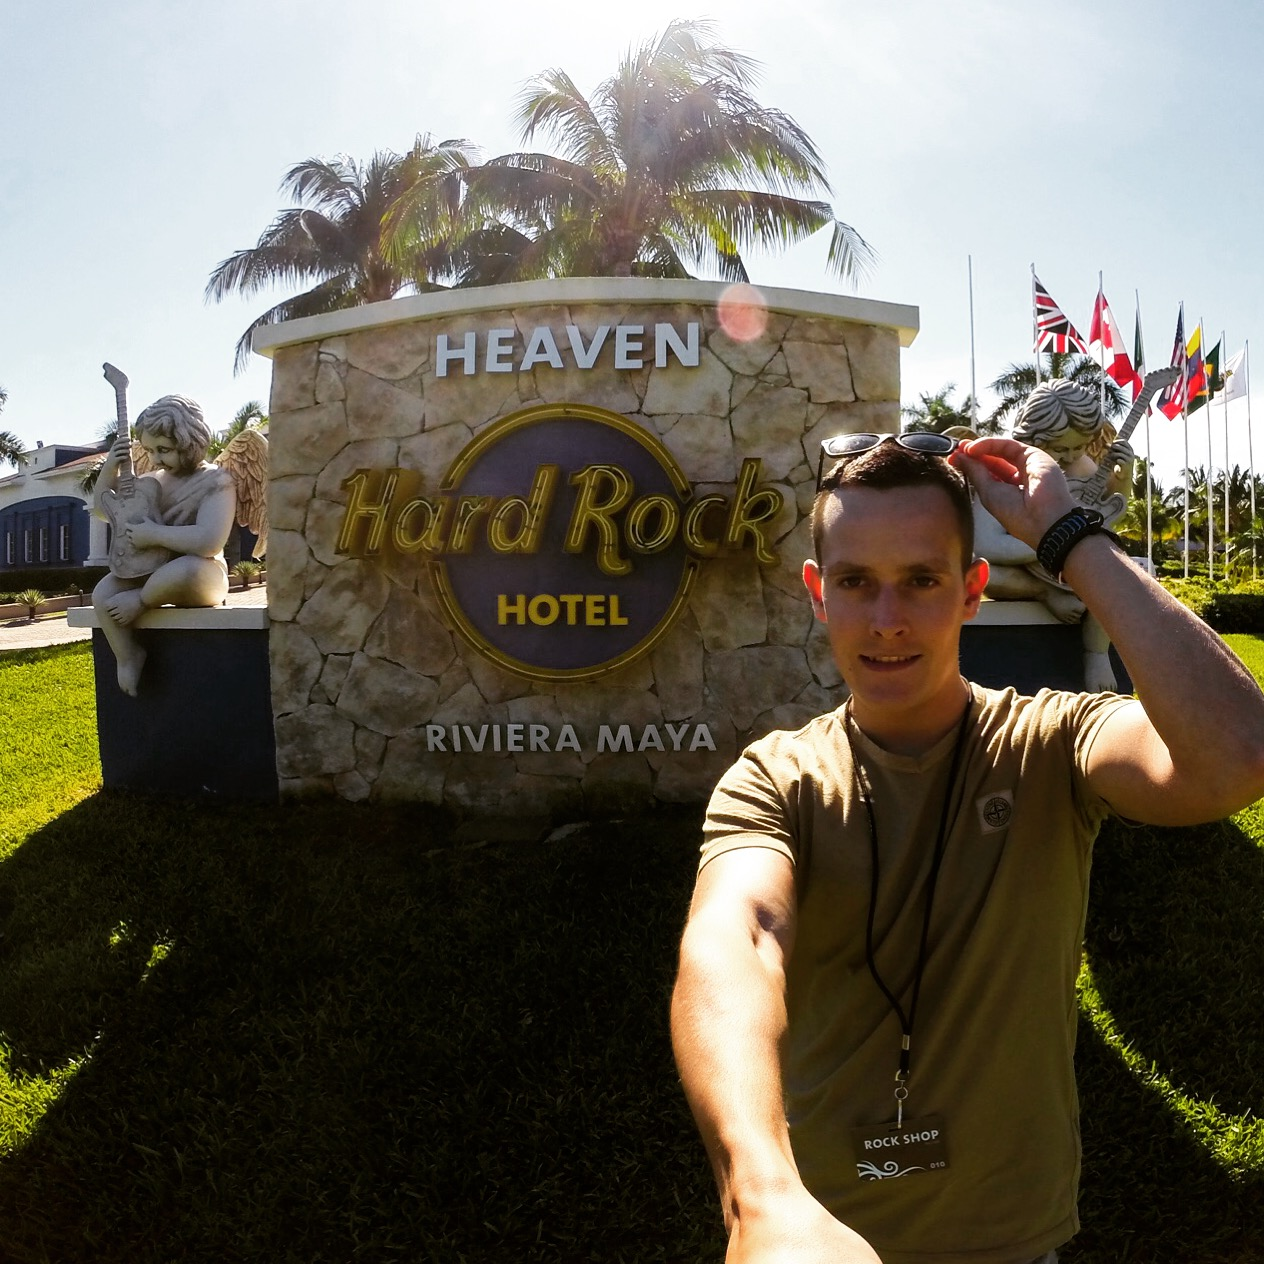 Hard Rock Hotel Riviera Maya - visited in 2016